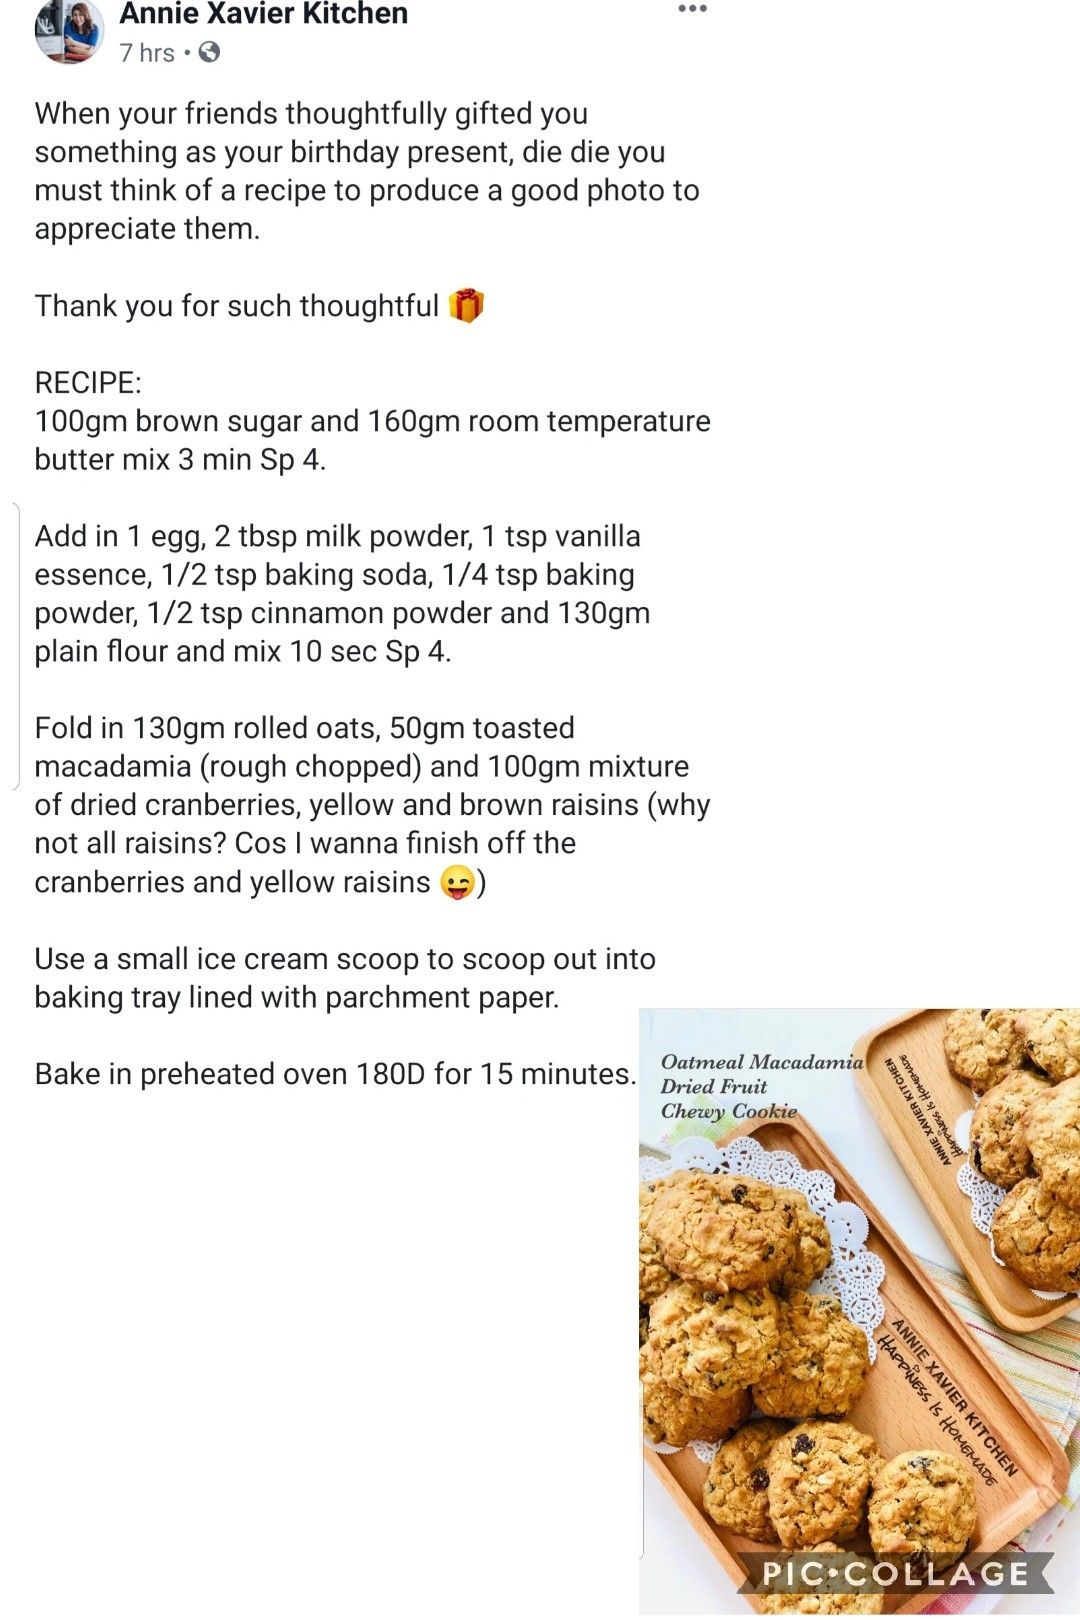 Oatmeal Macadamia Dry Fruit Chewy Cookies Thermomix Recipes Food And Drink Recipes